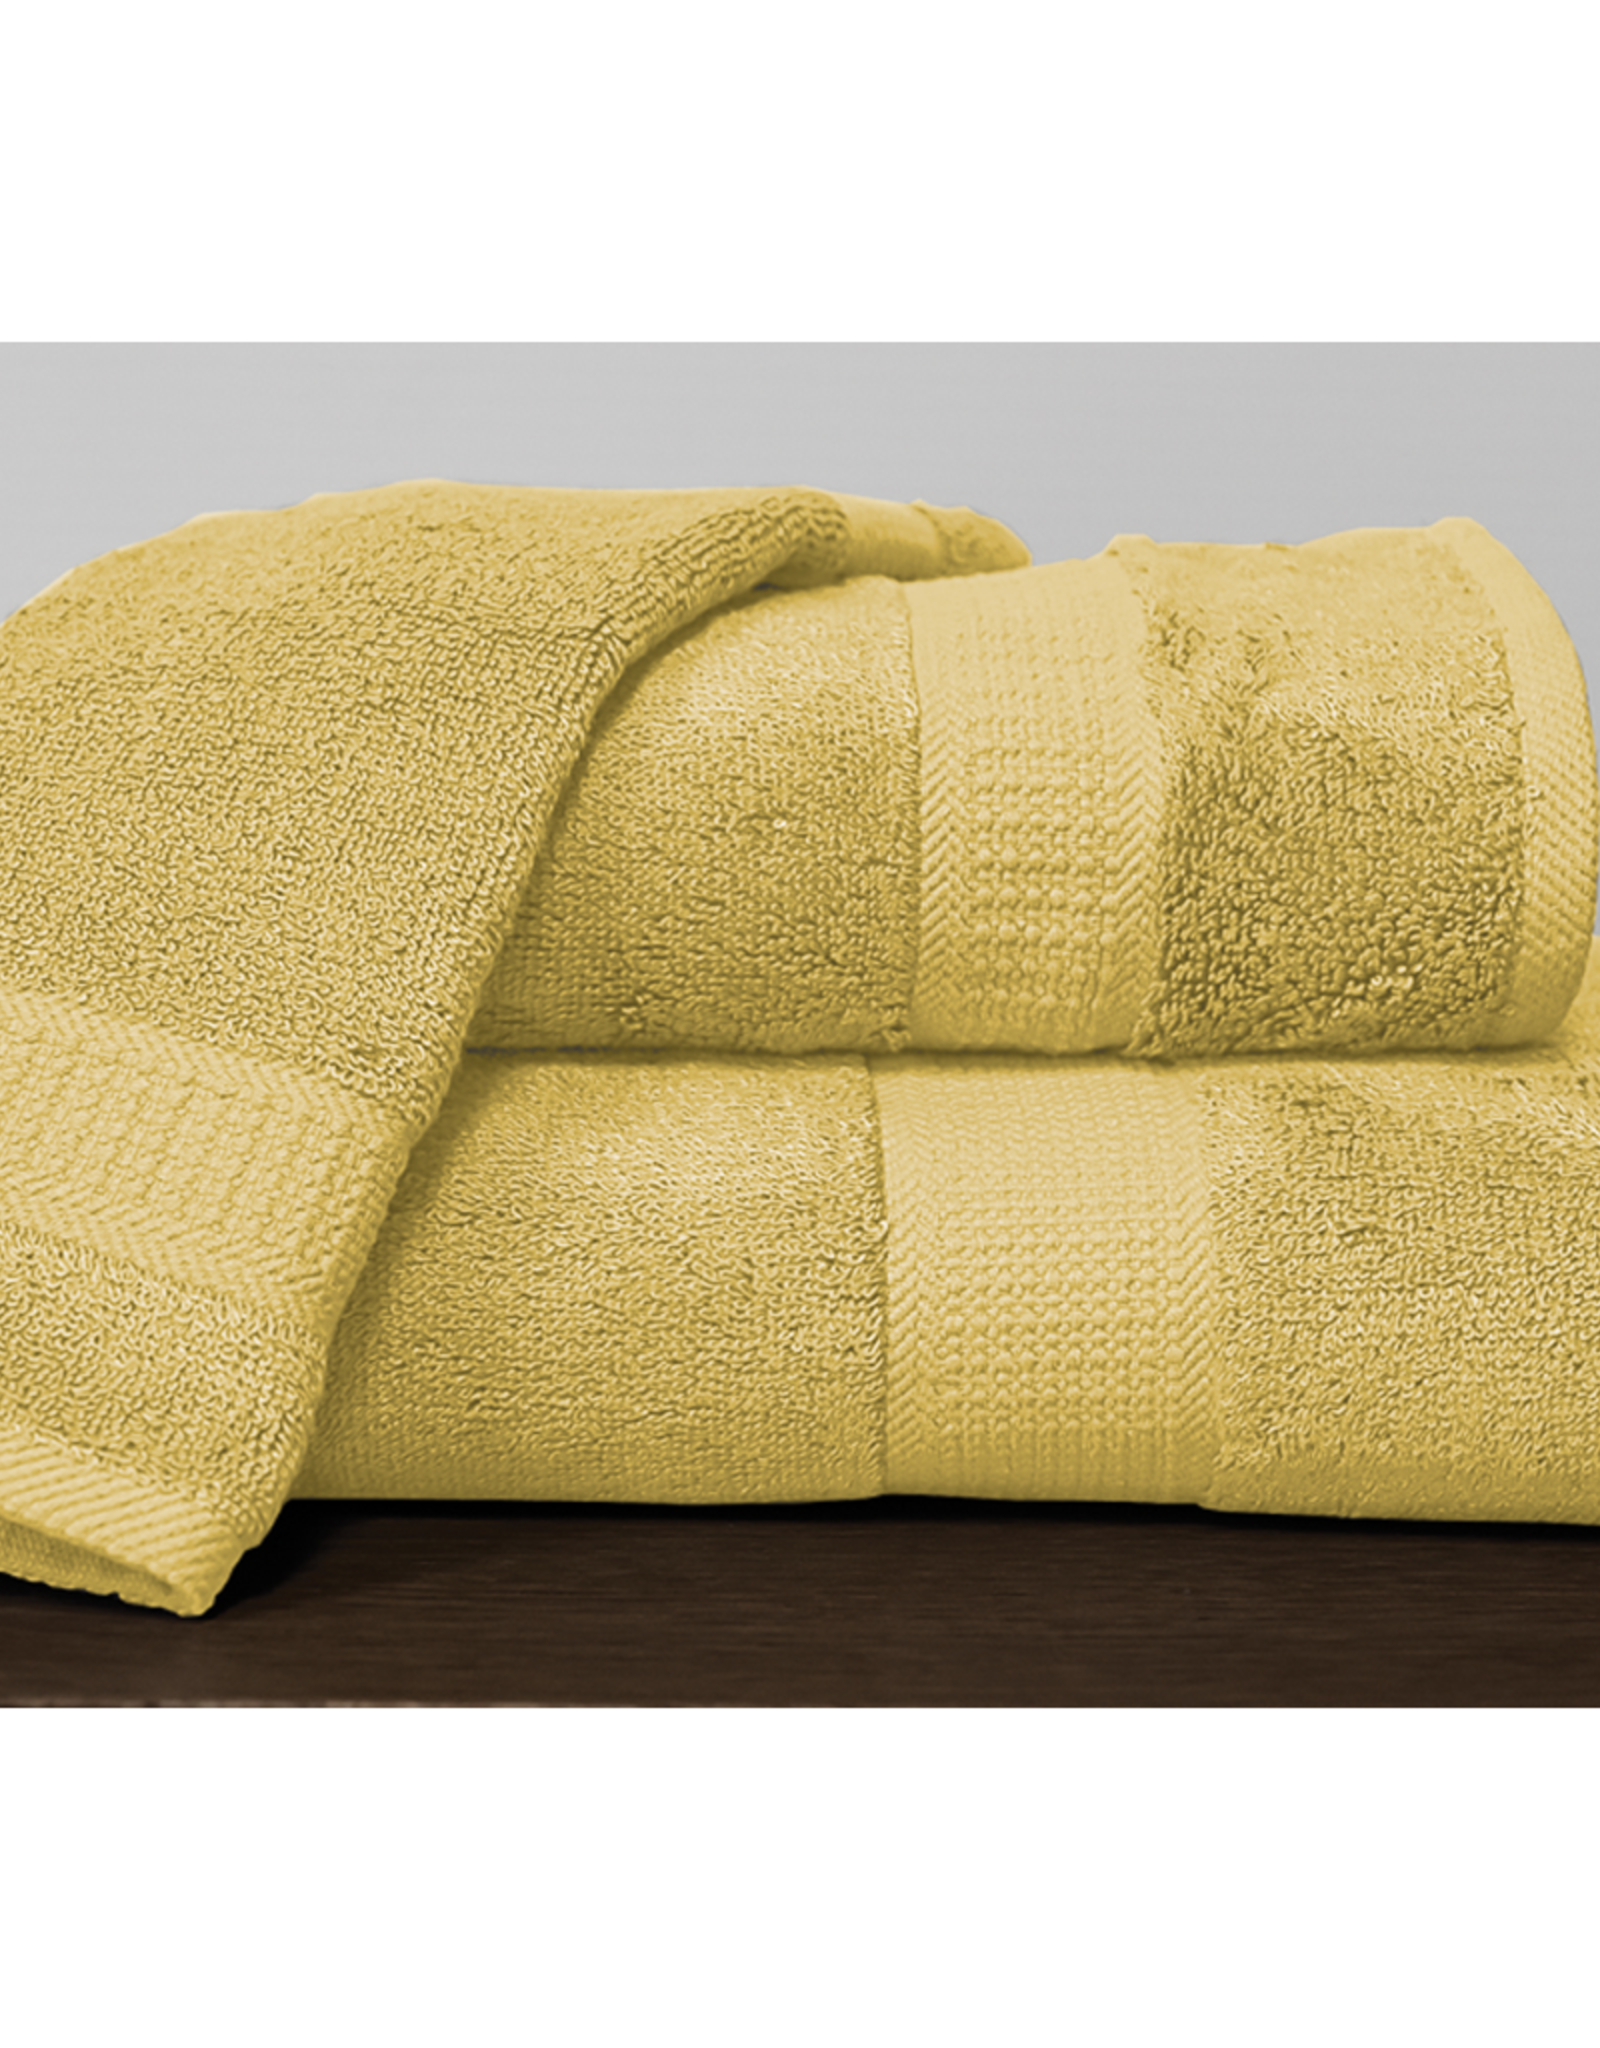 Alamode Home Hand Towel RJS Bamboo Butter Yellow